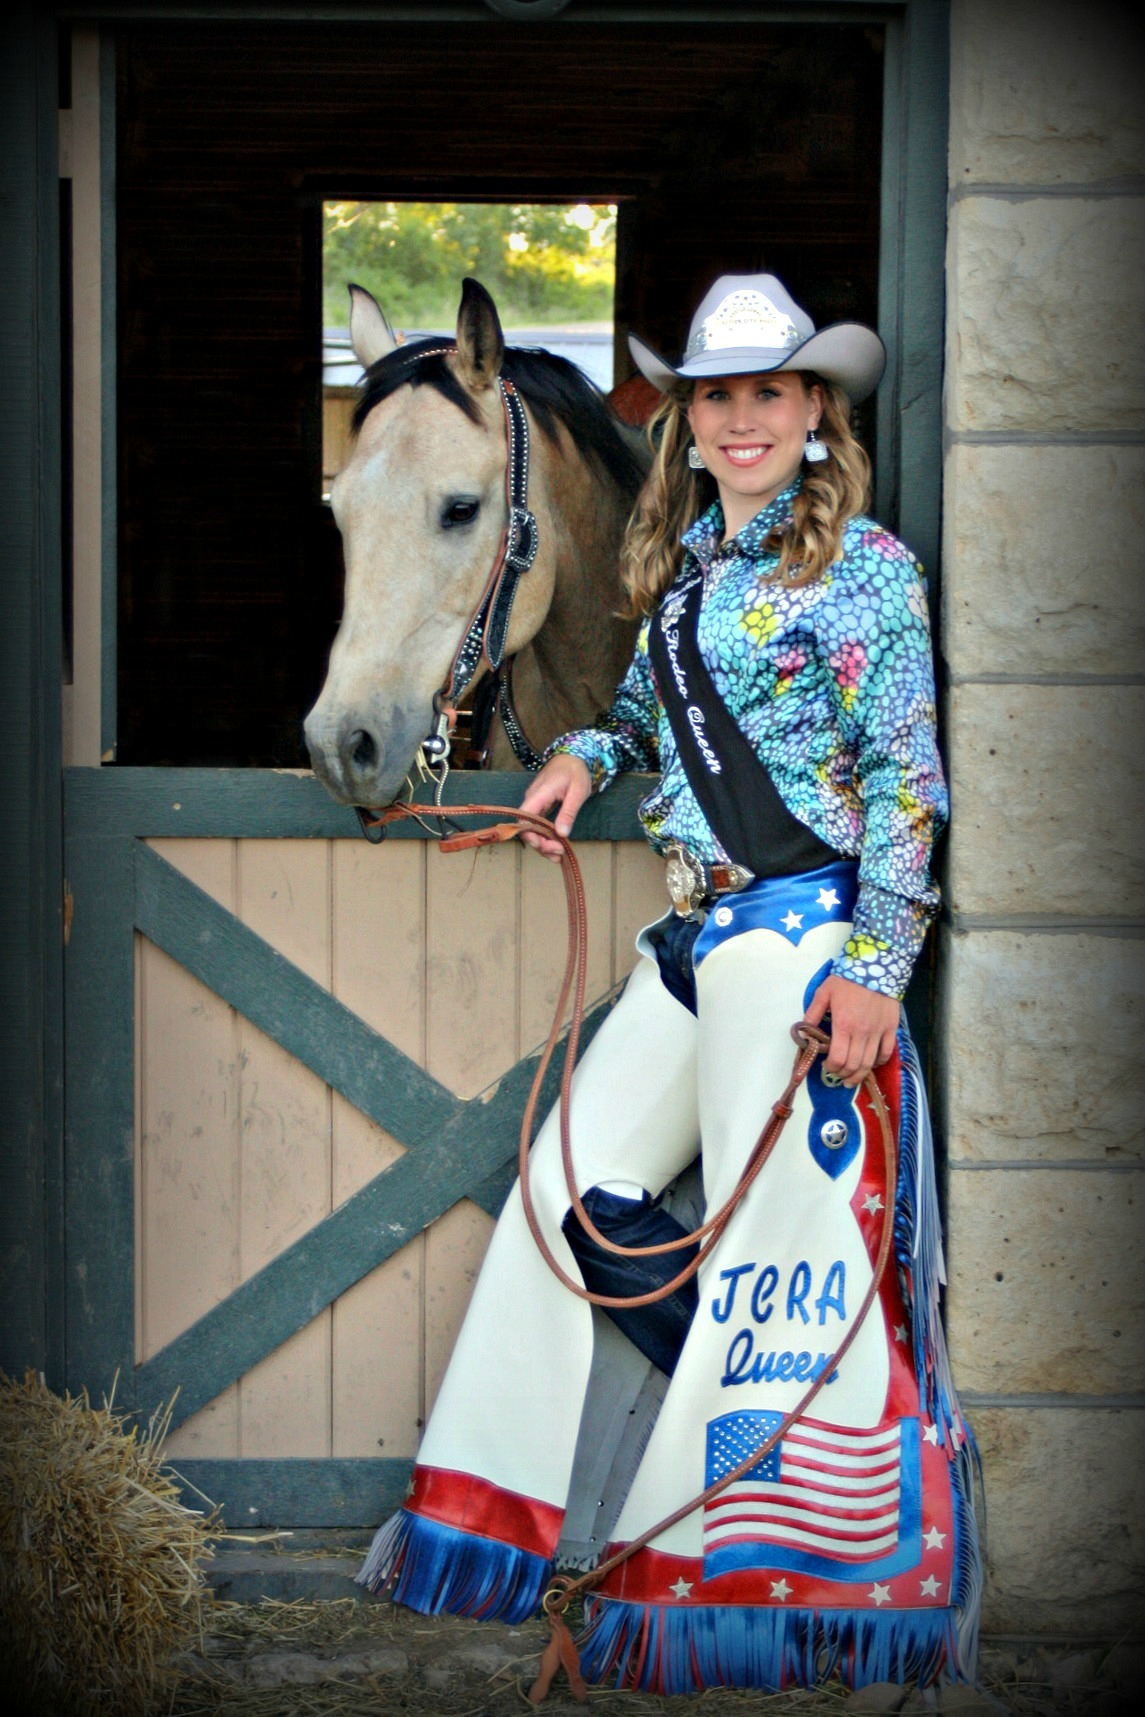 With her Quarter Horse called Boondoc, Shayla Lowry spread the good word about rodeo and its important heritage while serving as the Junction City Rodeo Queen. A student at Kansas State University, Lowry was crowned as the Eureka Rodeo Queen this summer and is continuing to attend and assist with rodeos and horse-related activities throughout the Midwest.